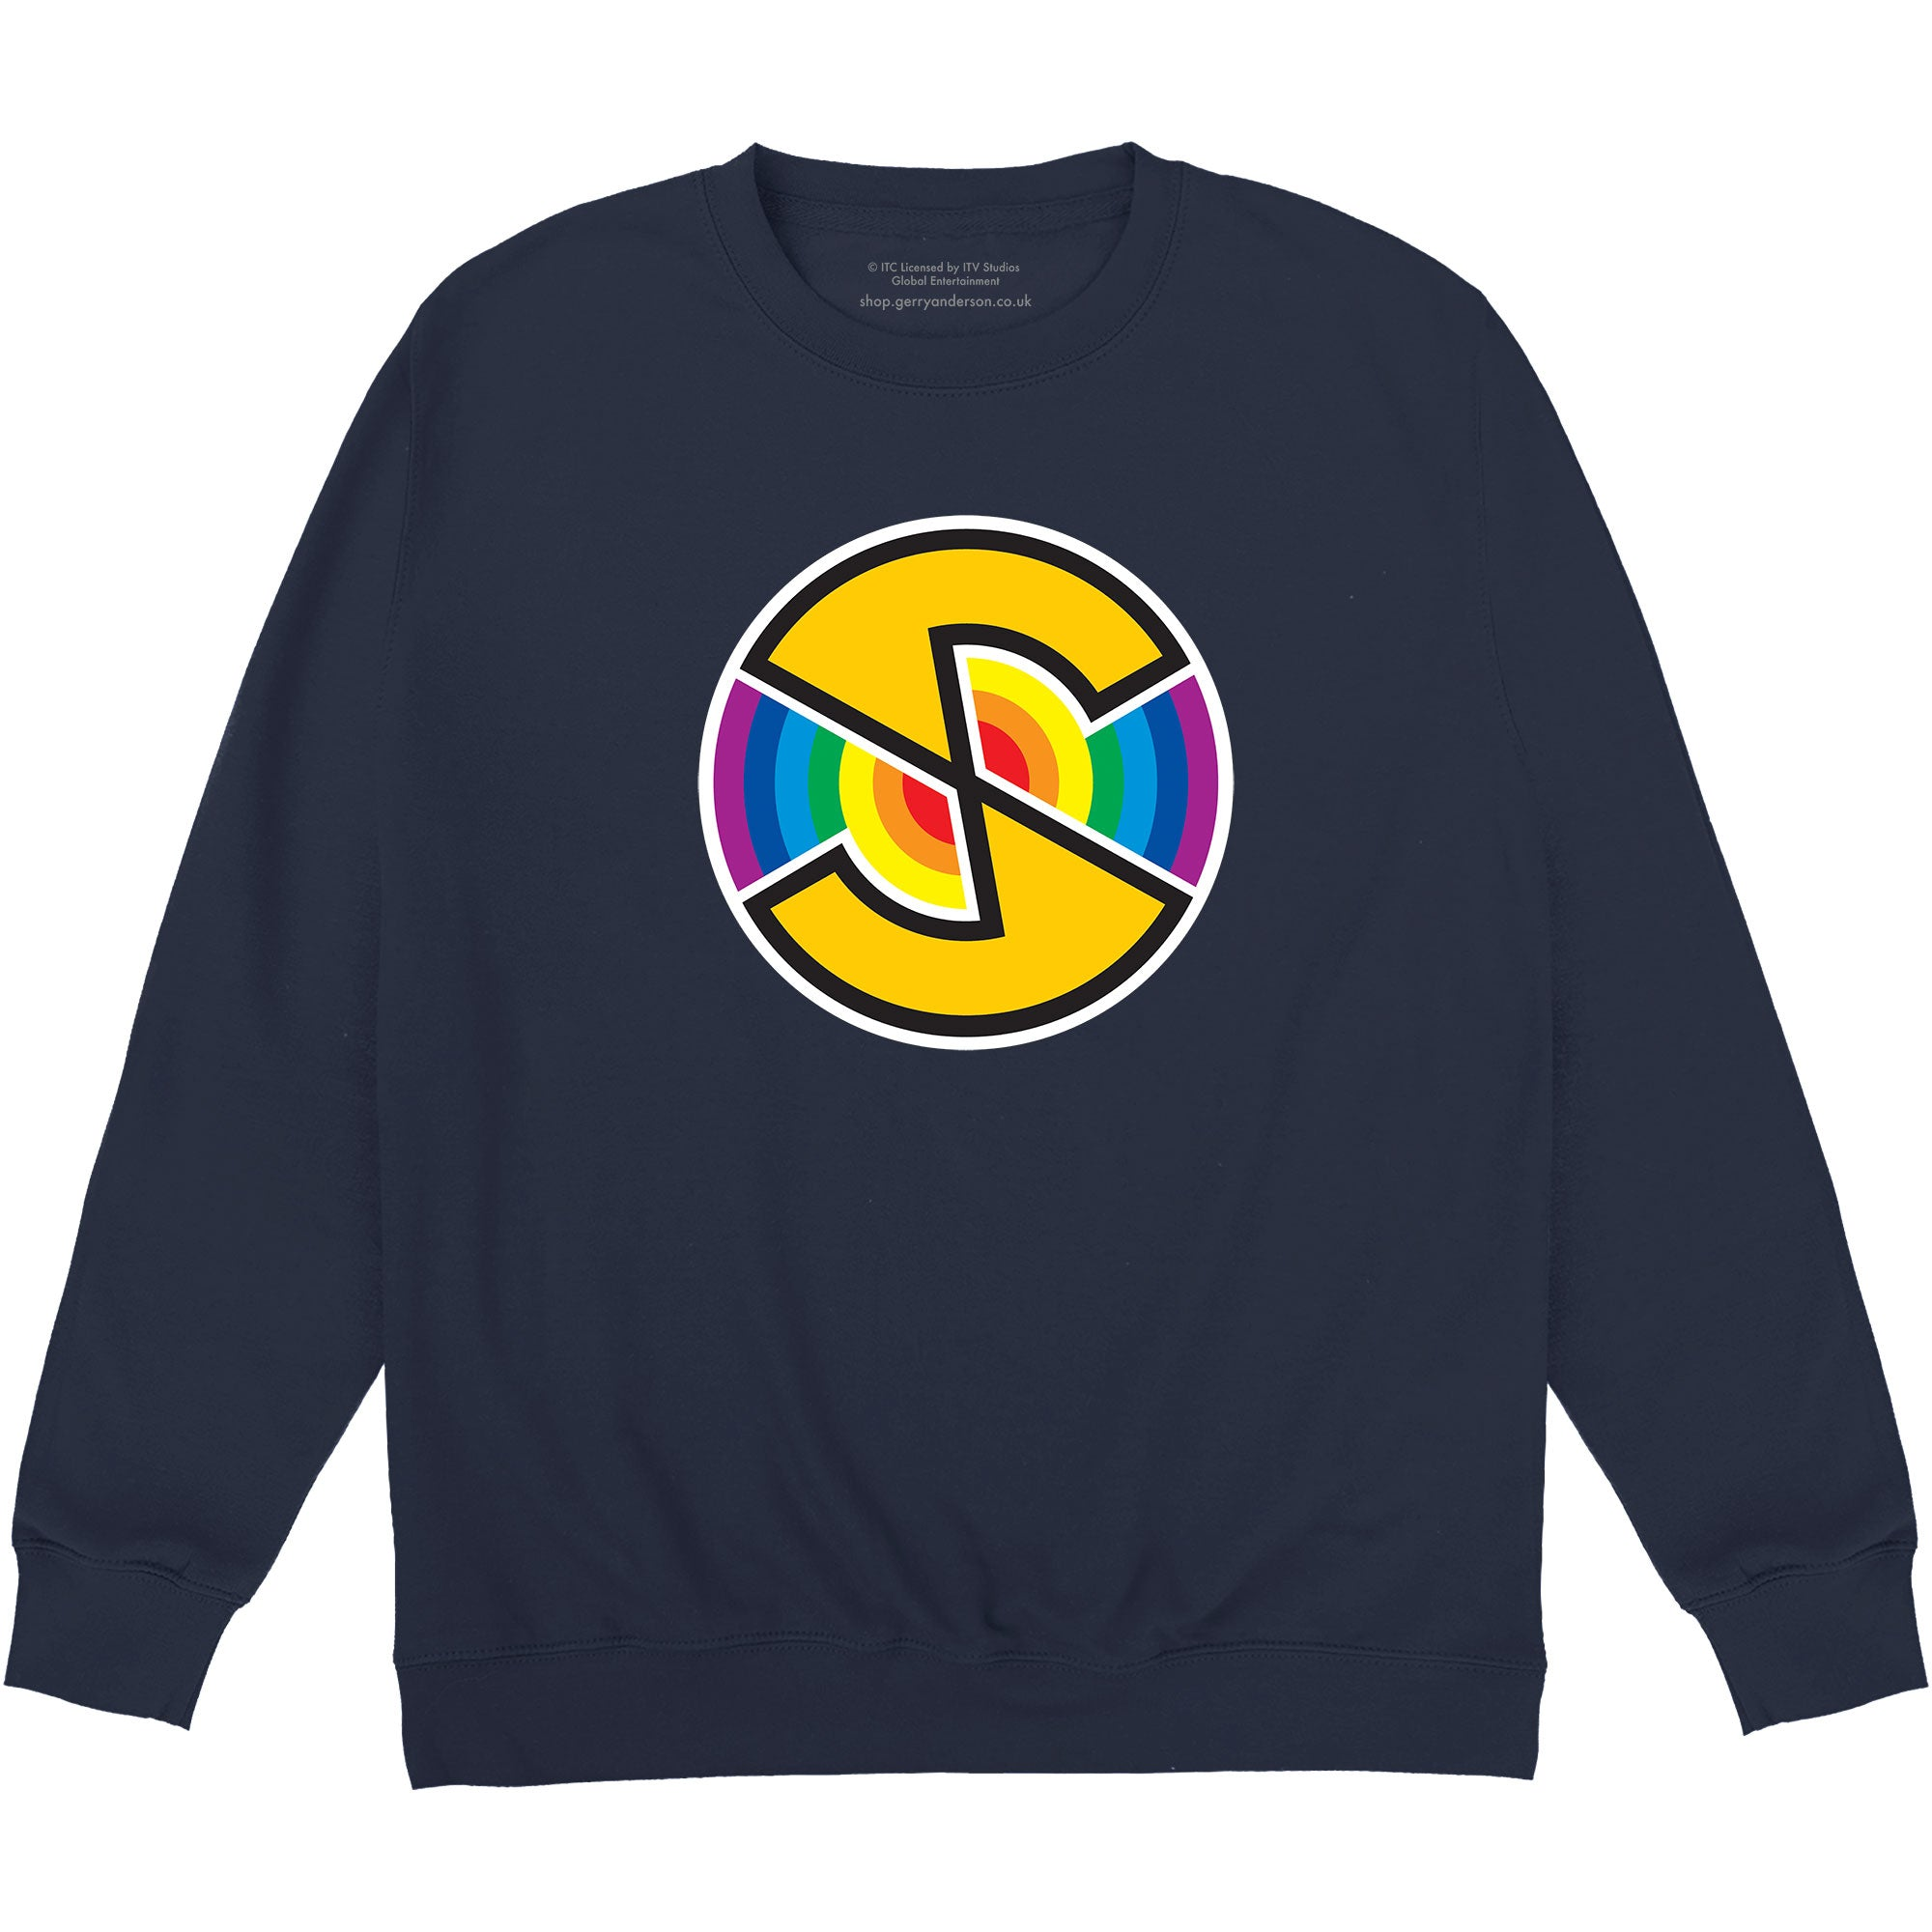 Captain Scarlet Spectrum Logo Sweatshirt [Official & Exclusive] - The Gerry Anderson Store